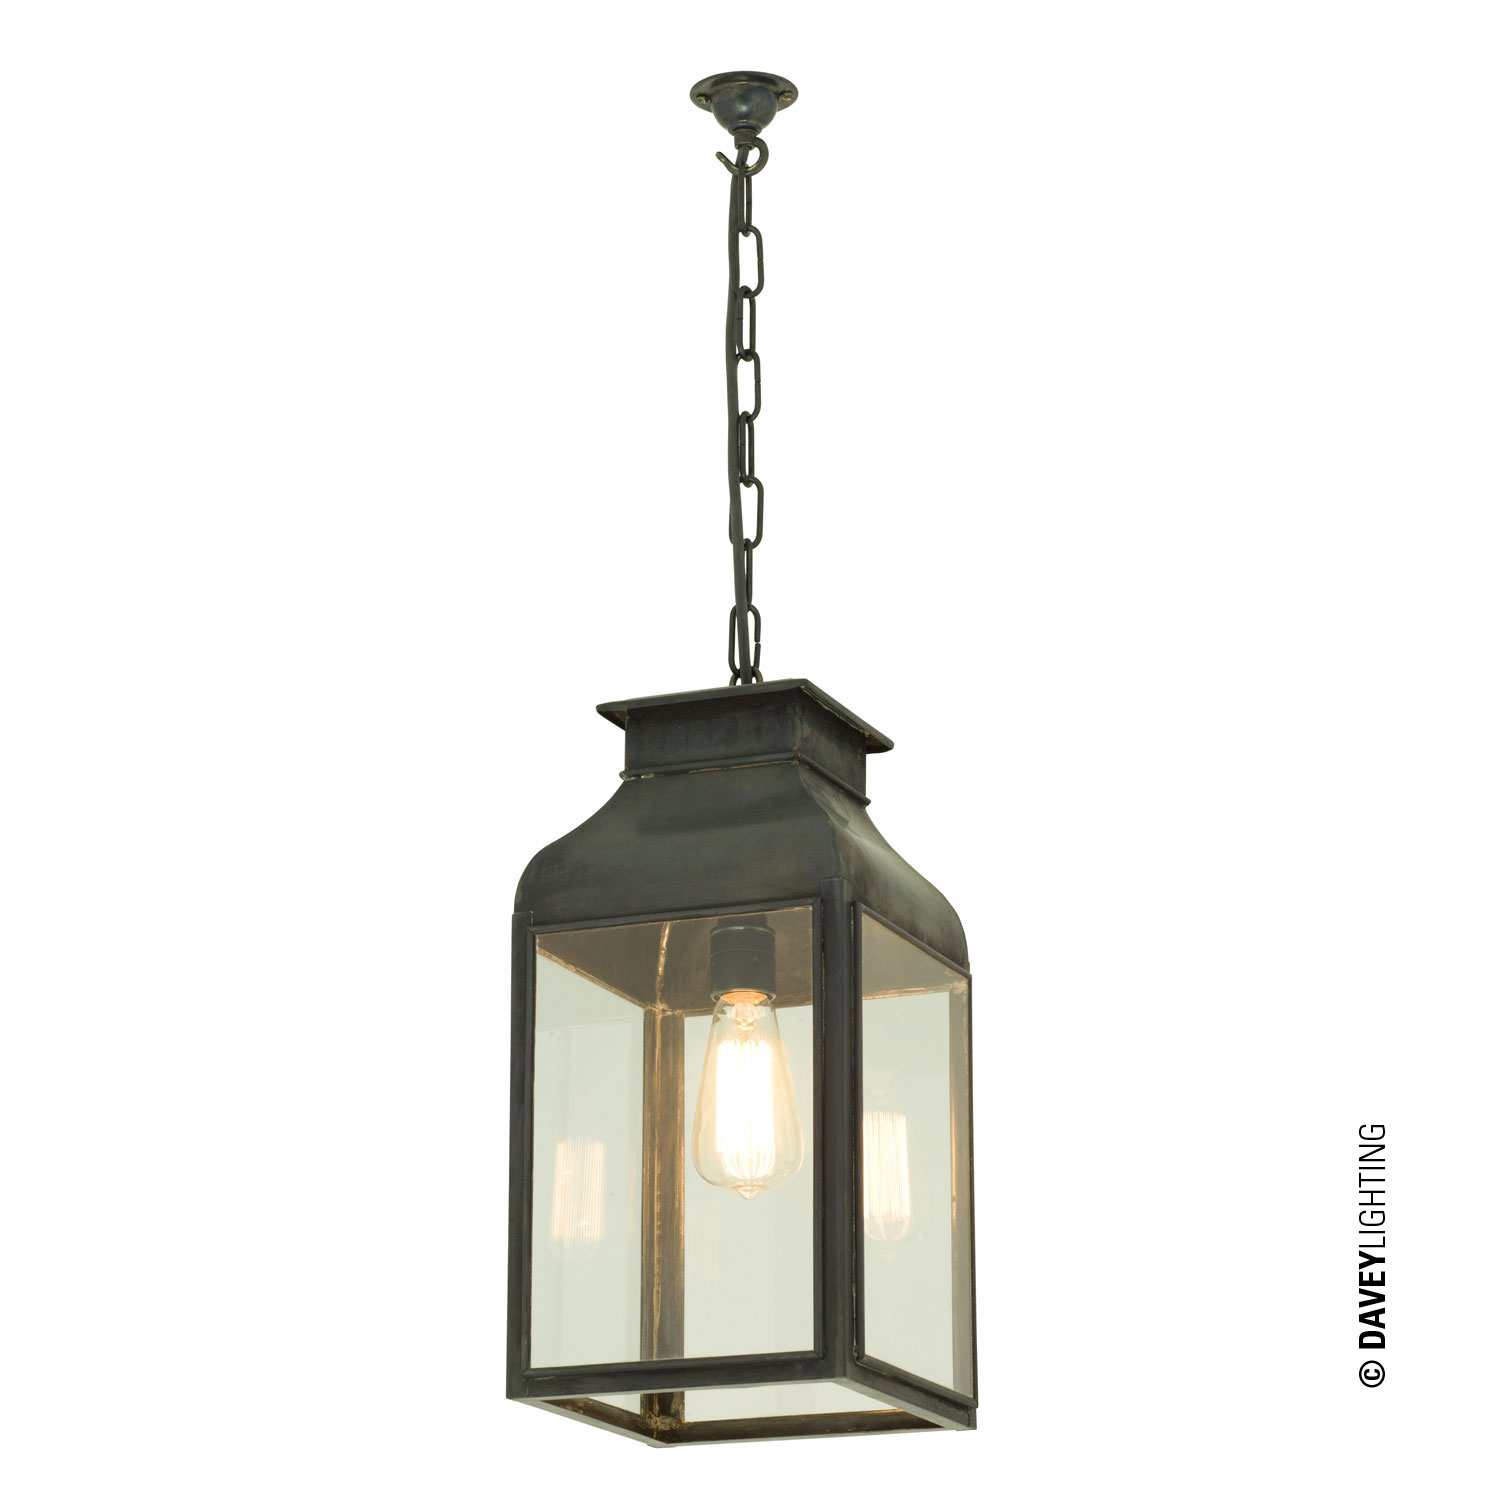 Pendant Lighting | Just Roof Lanterns